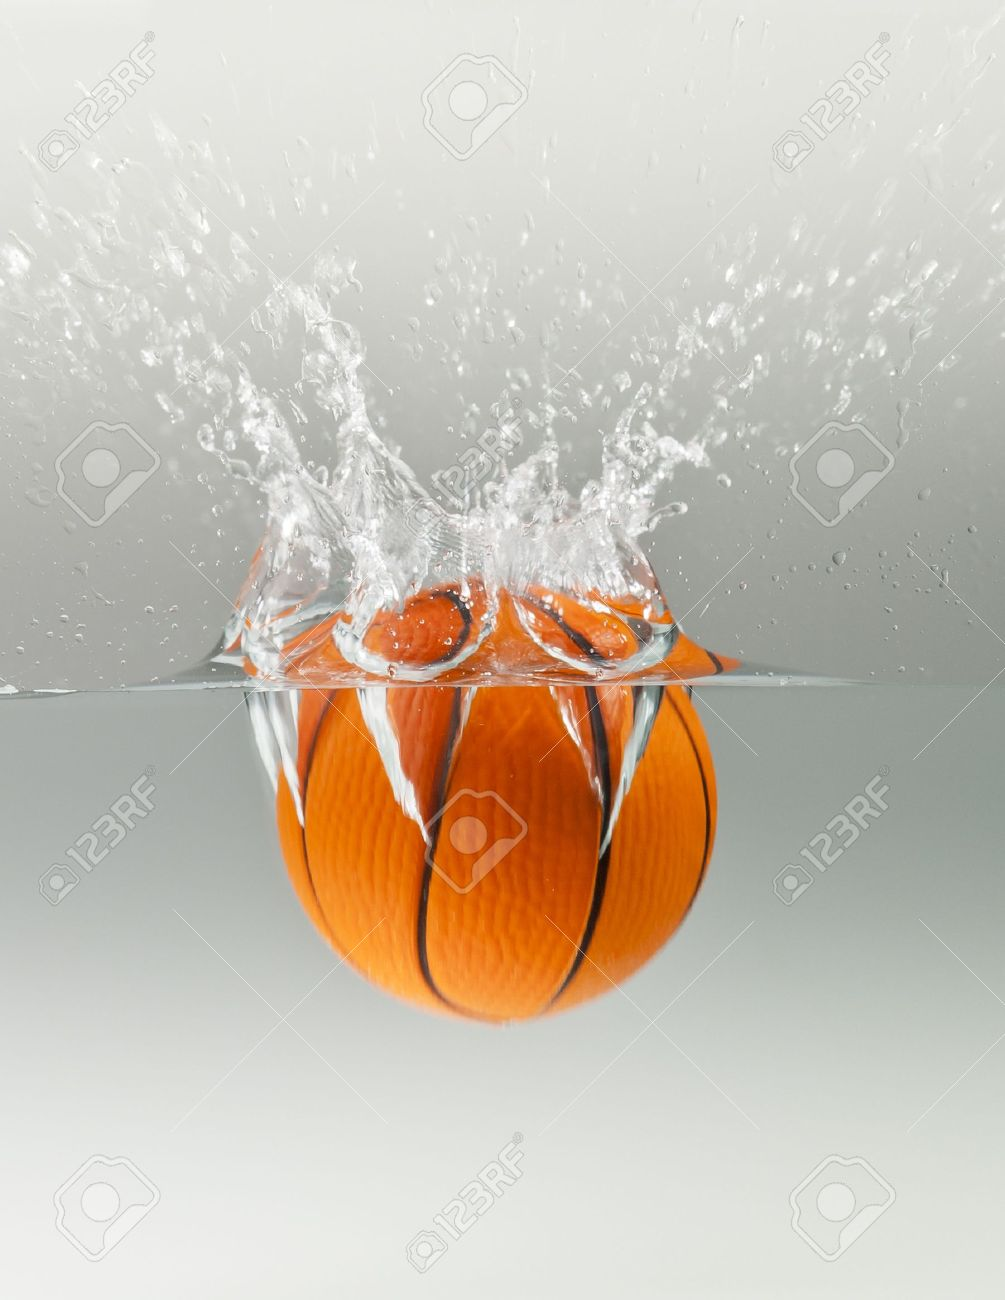 Falling basketball into water isolated on grey background Stock Photo - 10698691